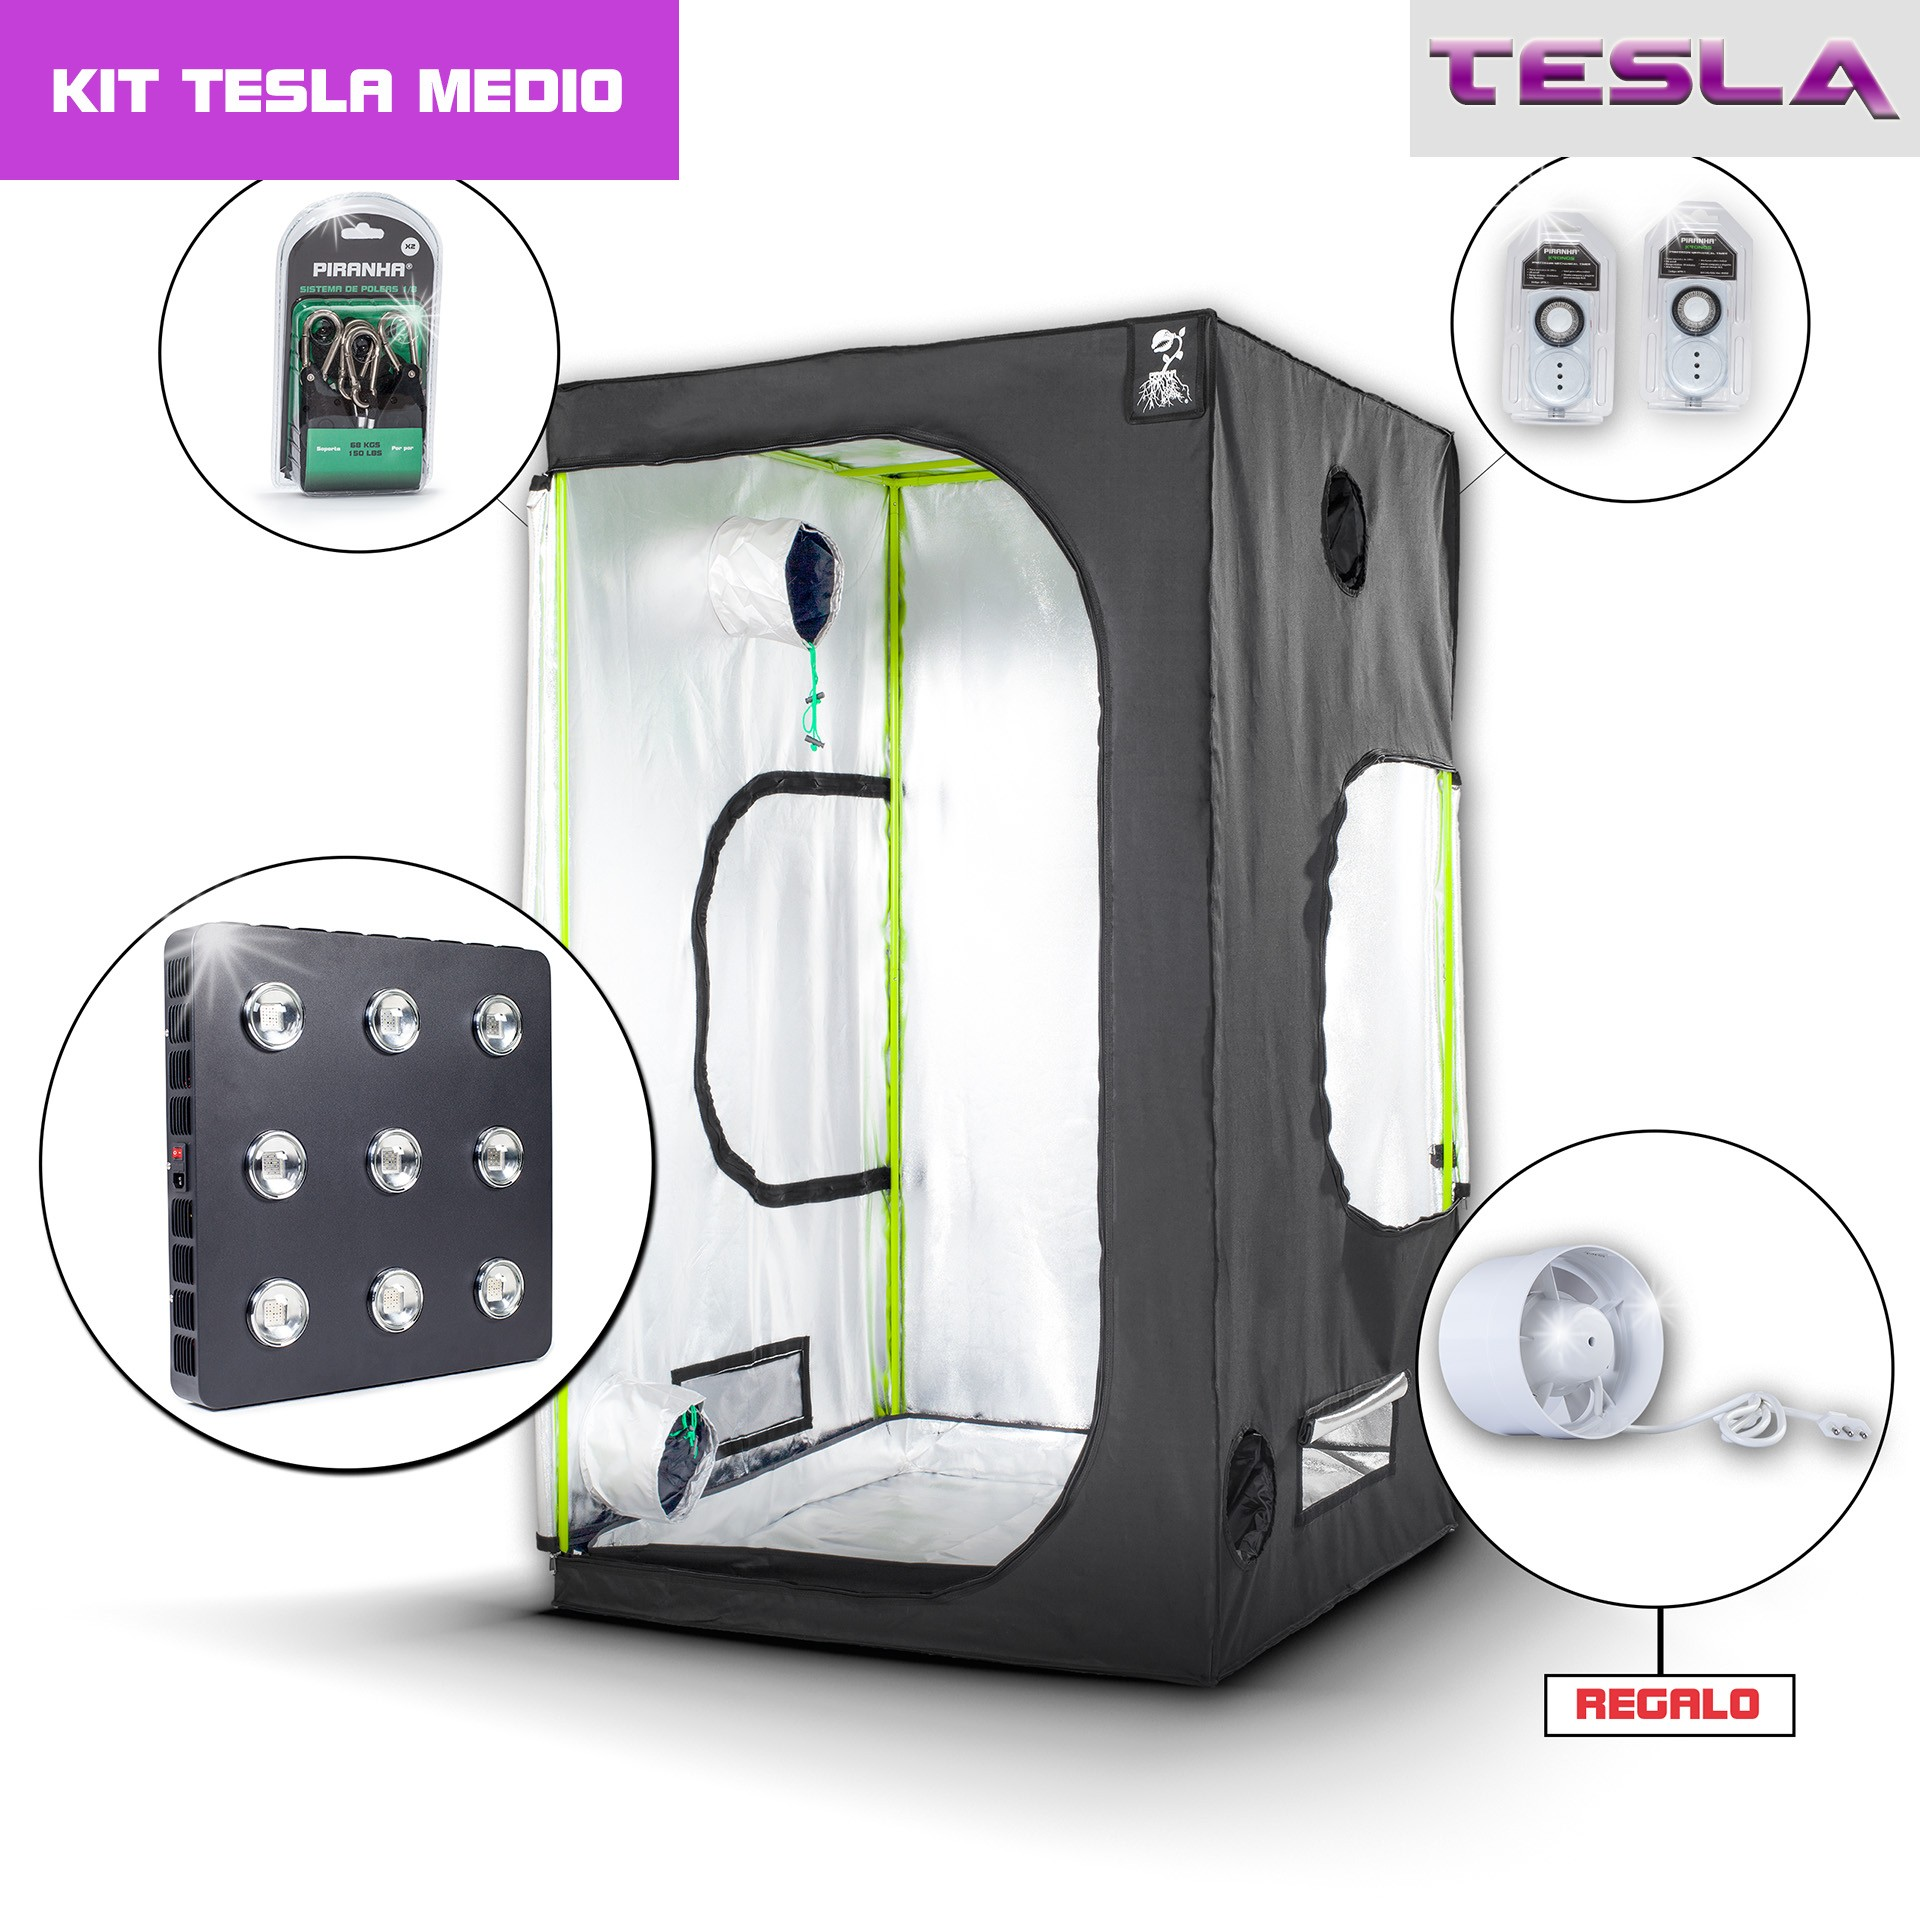 Kit Tesla 120 - T810W Medio